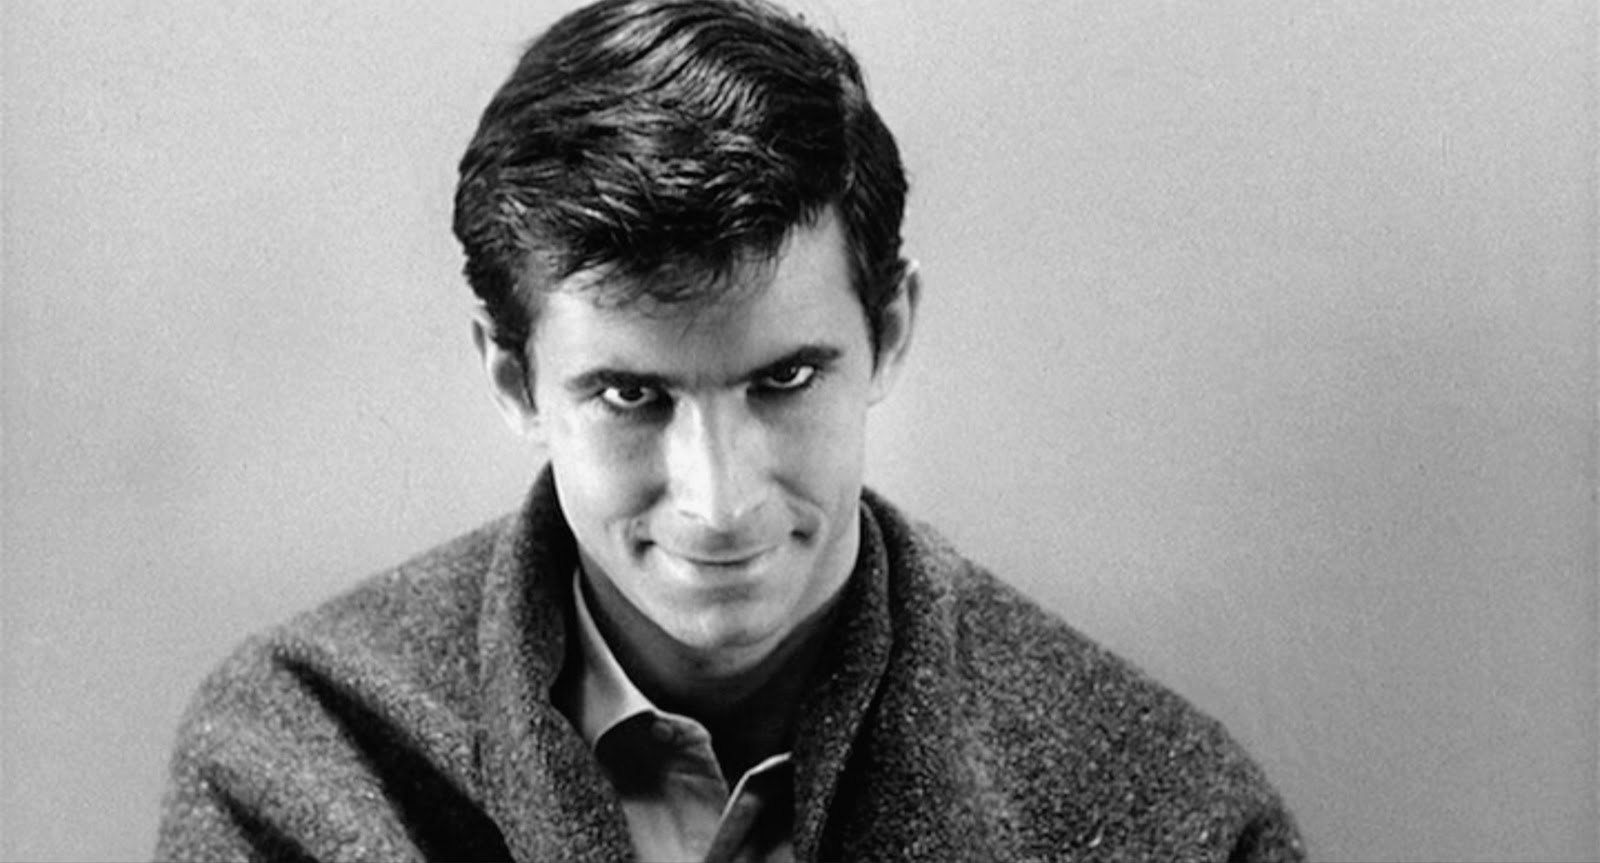 psycho-anthony-perkins-as-norman-bates.jpg